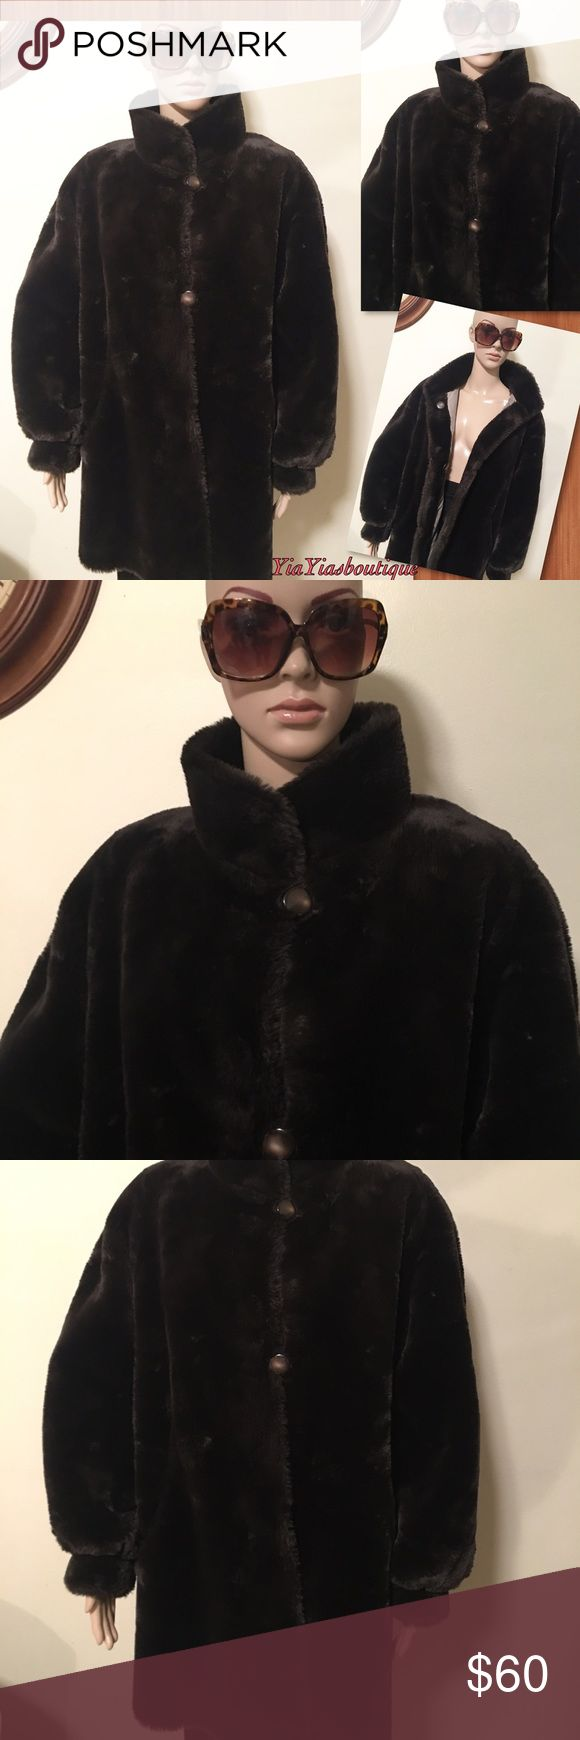 Dark brown Faux Fur Coat Dark brown 3/4 Faux Fur coat Vintage Jackets & Coats